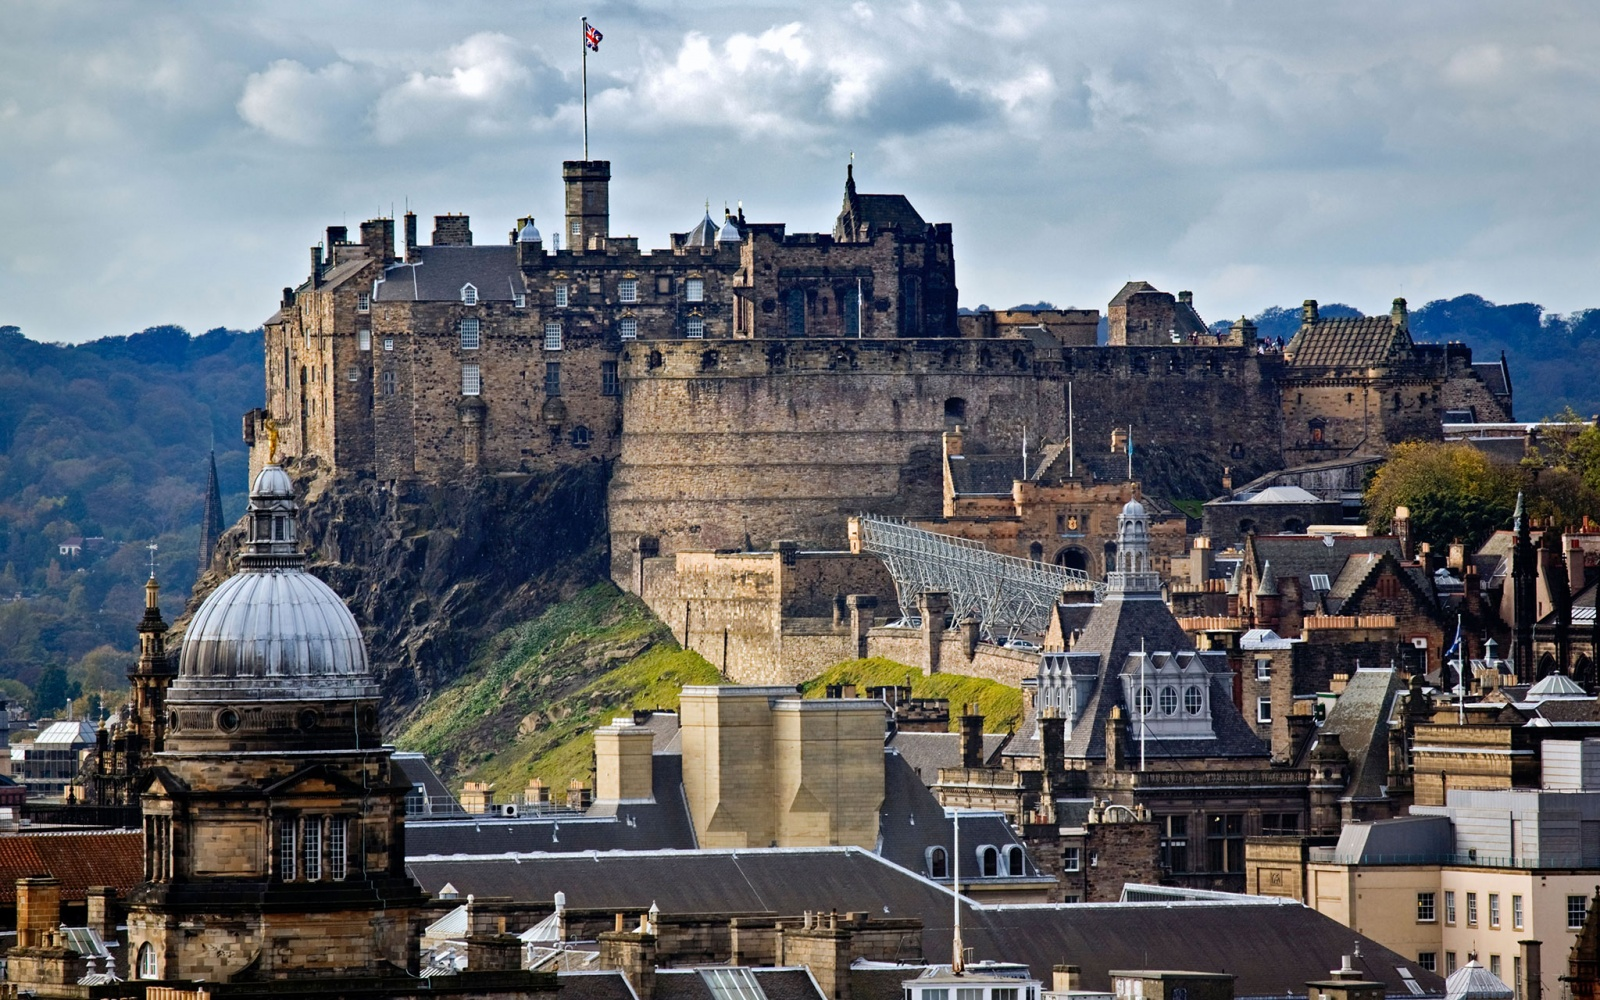 No. 17 Edinburgh Castle